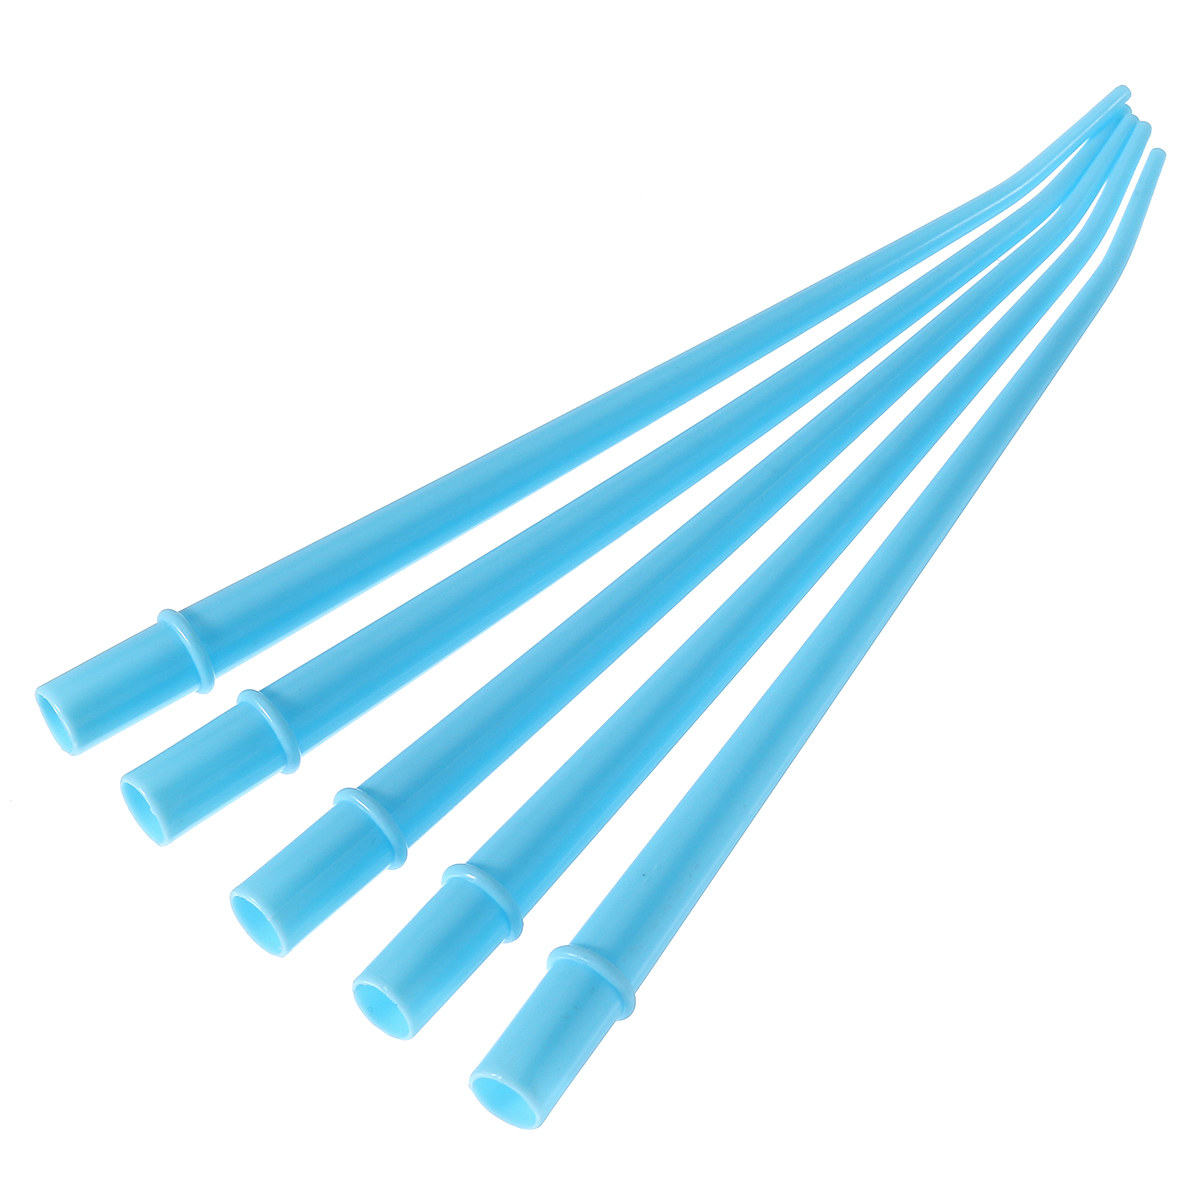 25pcs Plastic Curved Tips Surgical Aspirator Dental Saliva Ejector Tips Disposable Autoclavable Suction Tube 1/4 1/8'' 1/16'' baby toy montessori basic wooden grammar symbols with box early childhood education preschool training kids brinquedos juguetes